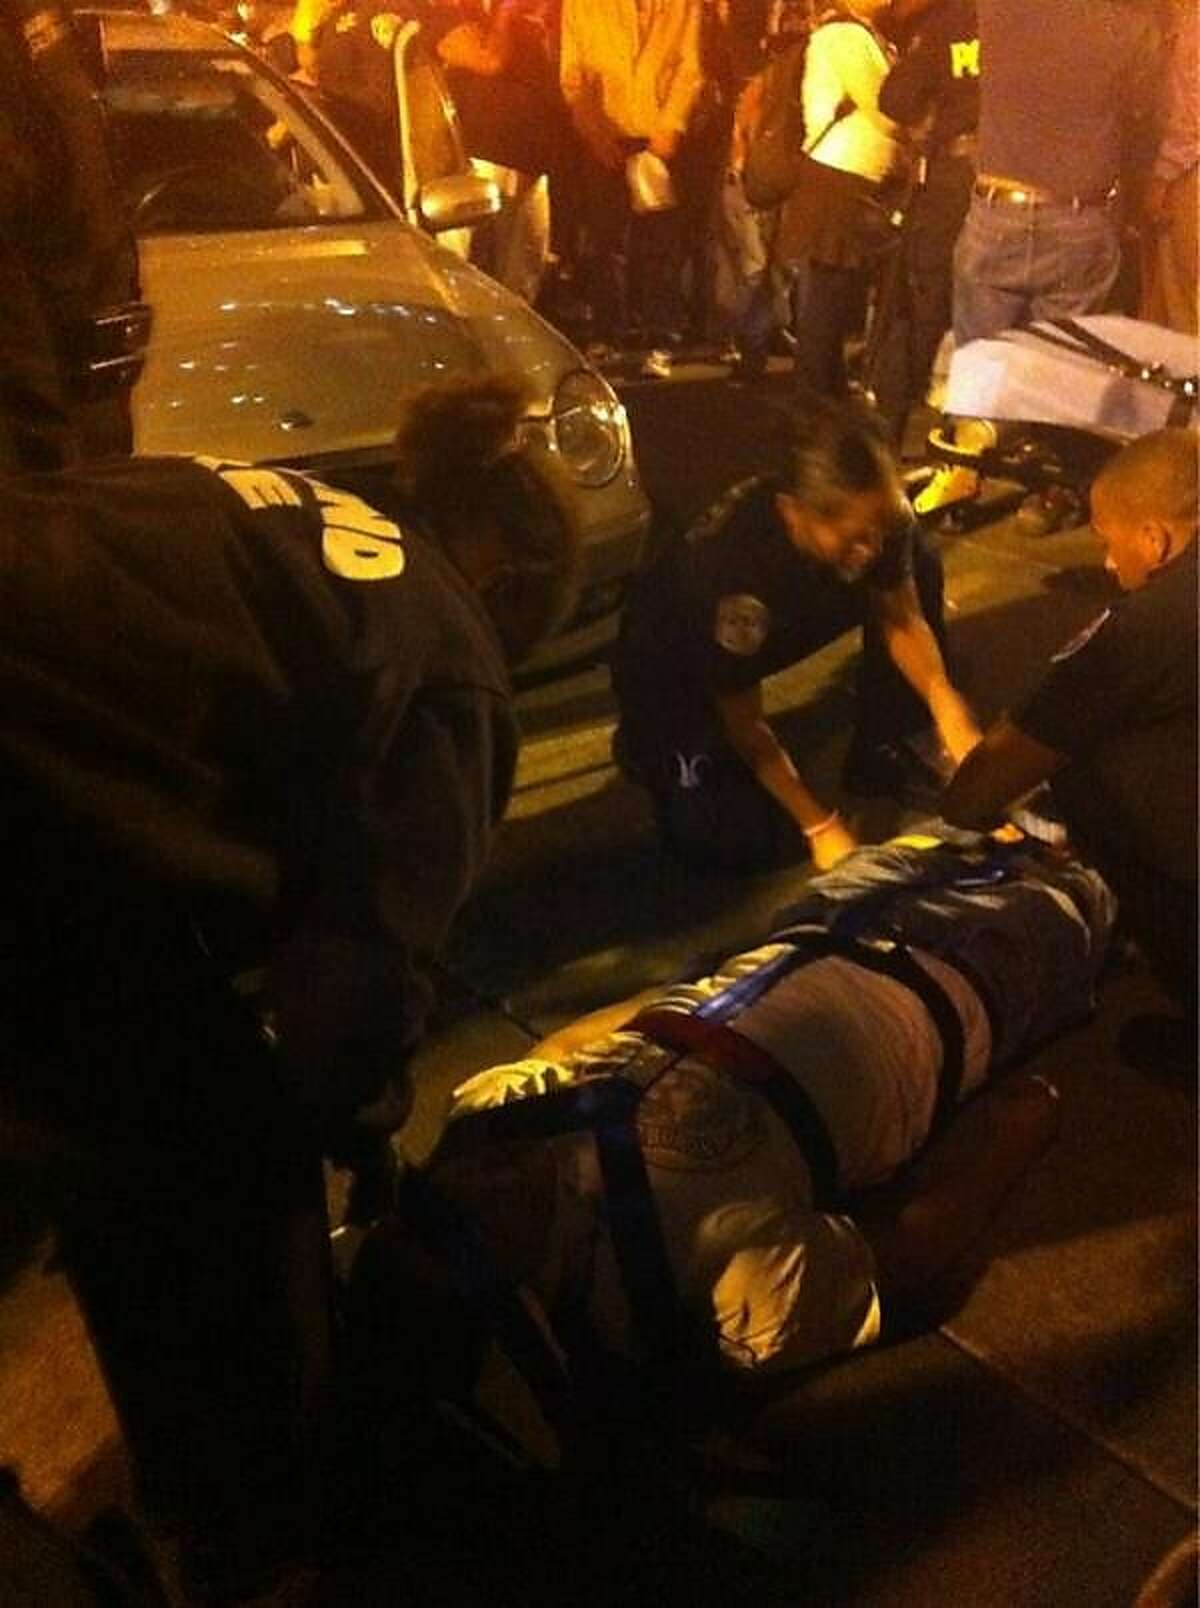 An injured Occupy Oakland protester is treated after being struck by a car at 11th Street and Broadway.